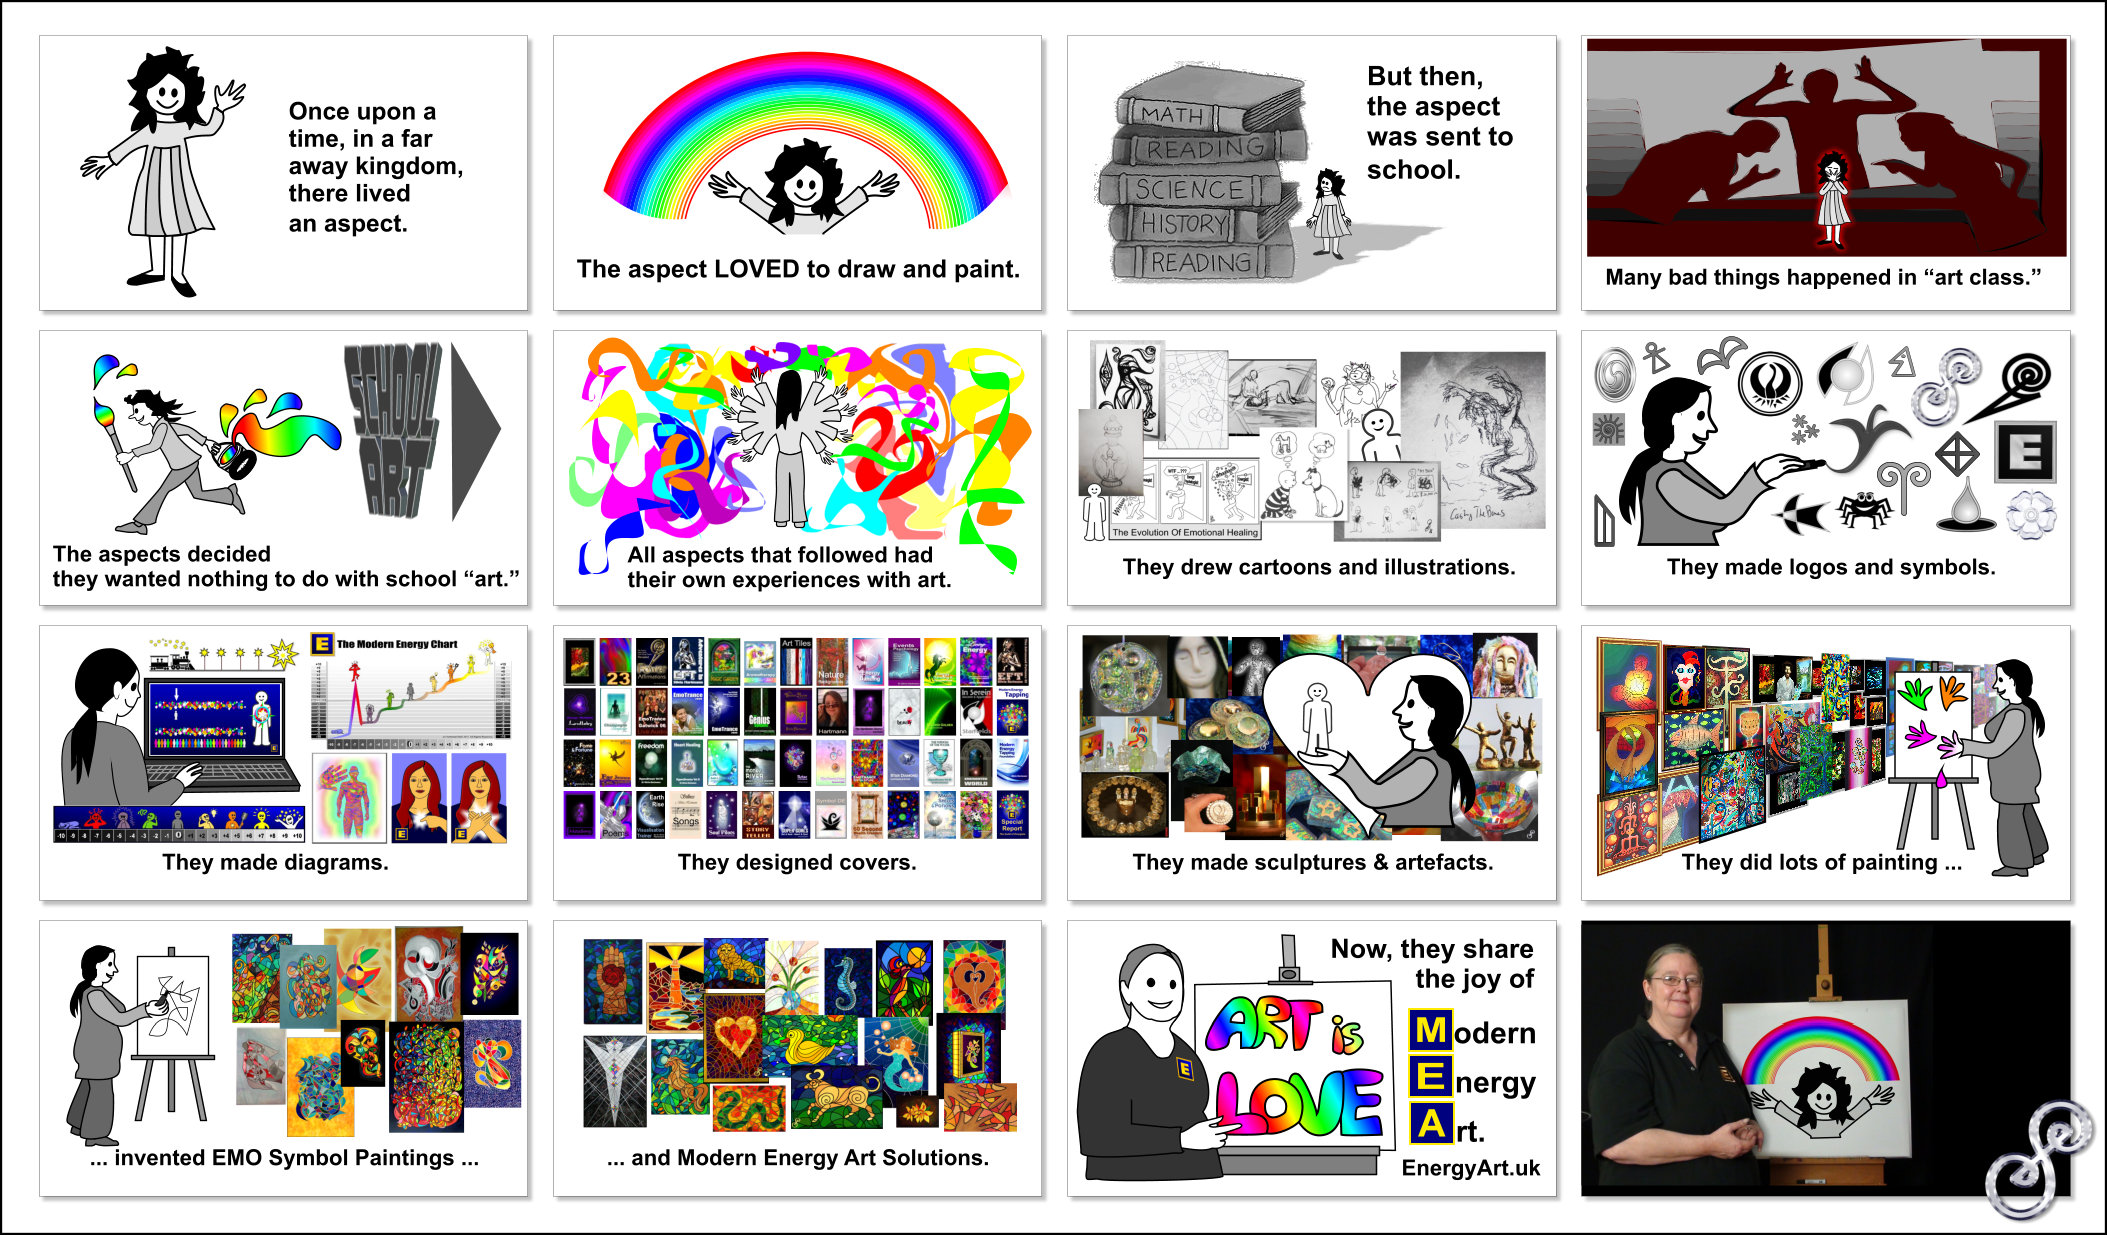 The complete my life in art storyboard in a single image